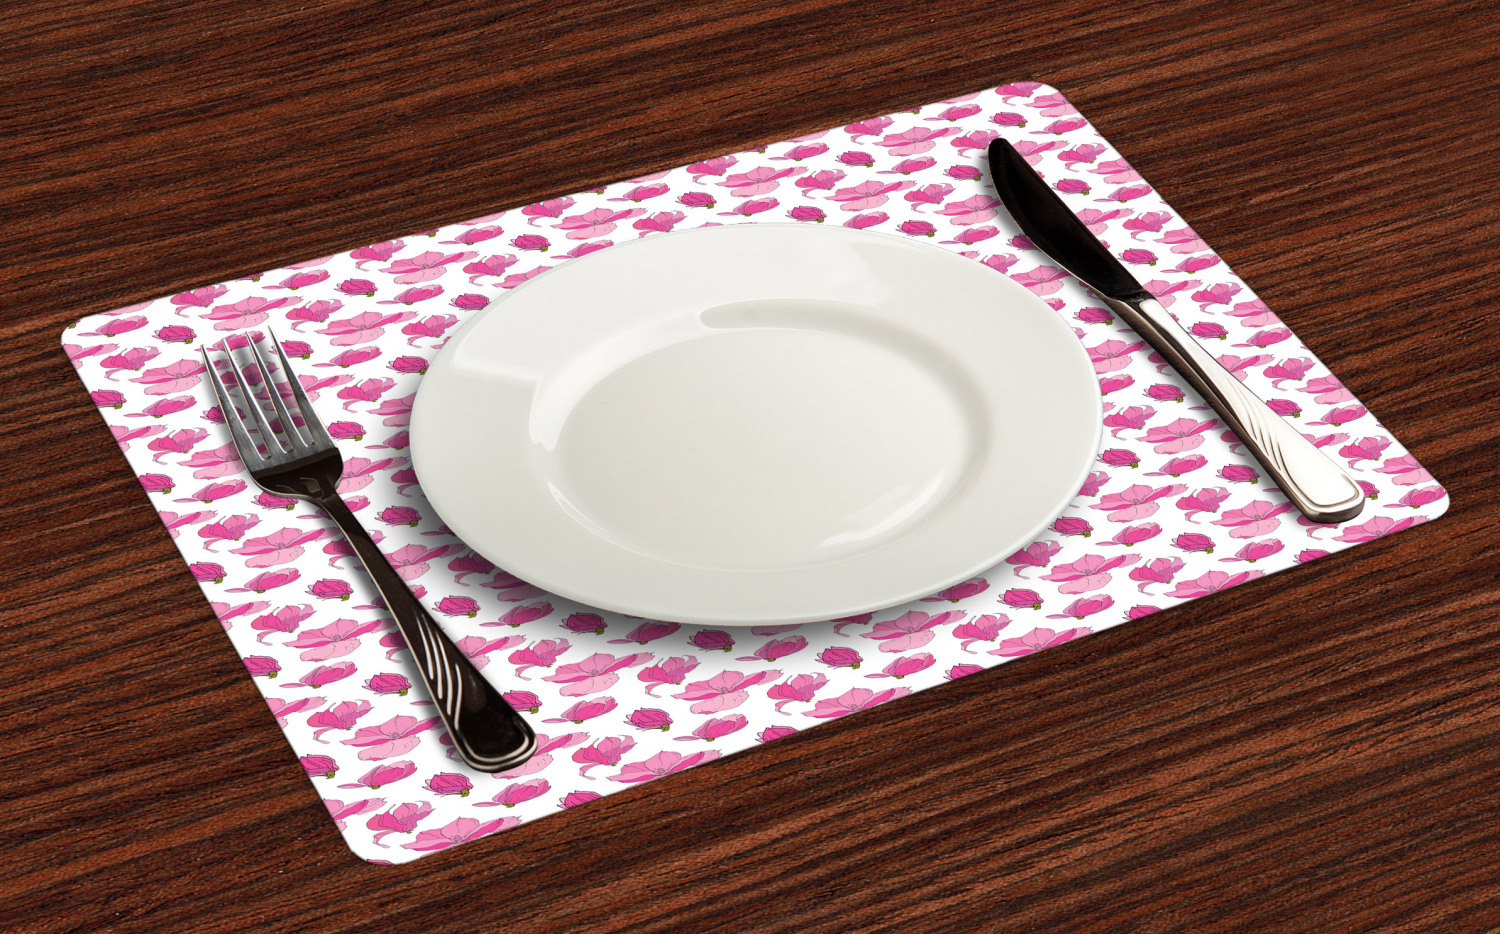 Ambesonne-Flower-Pattern-Placemat-Set-of-4-Fabric-Place-Mats-for-Table-Decor thumbnail 129